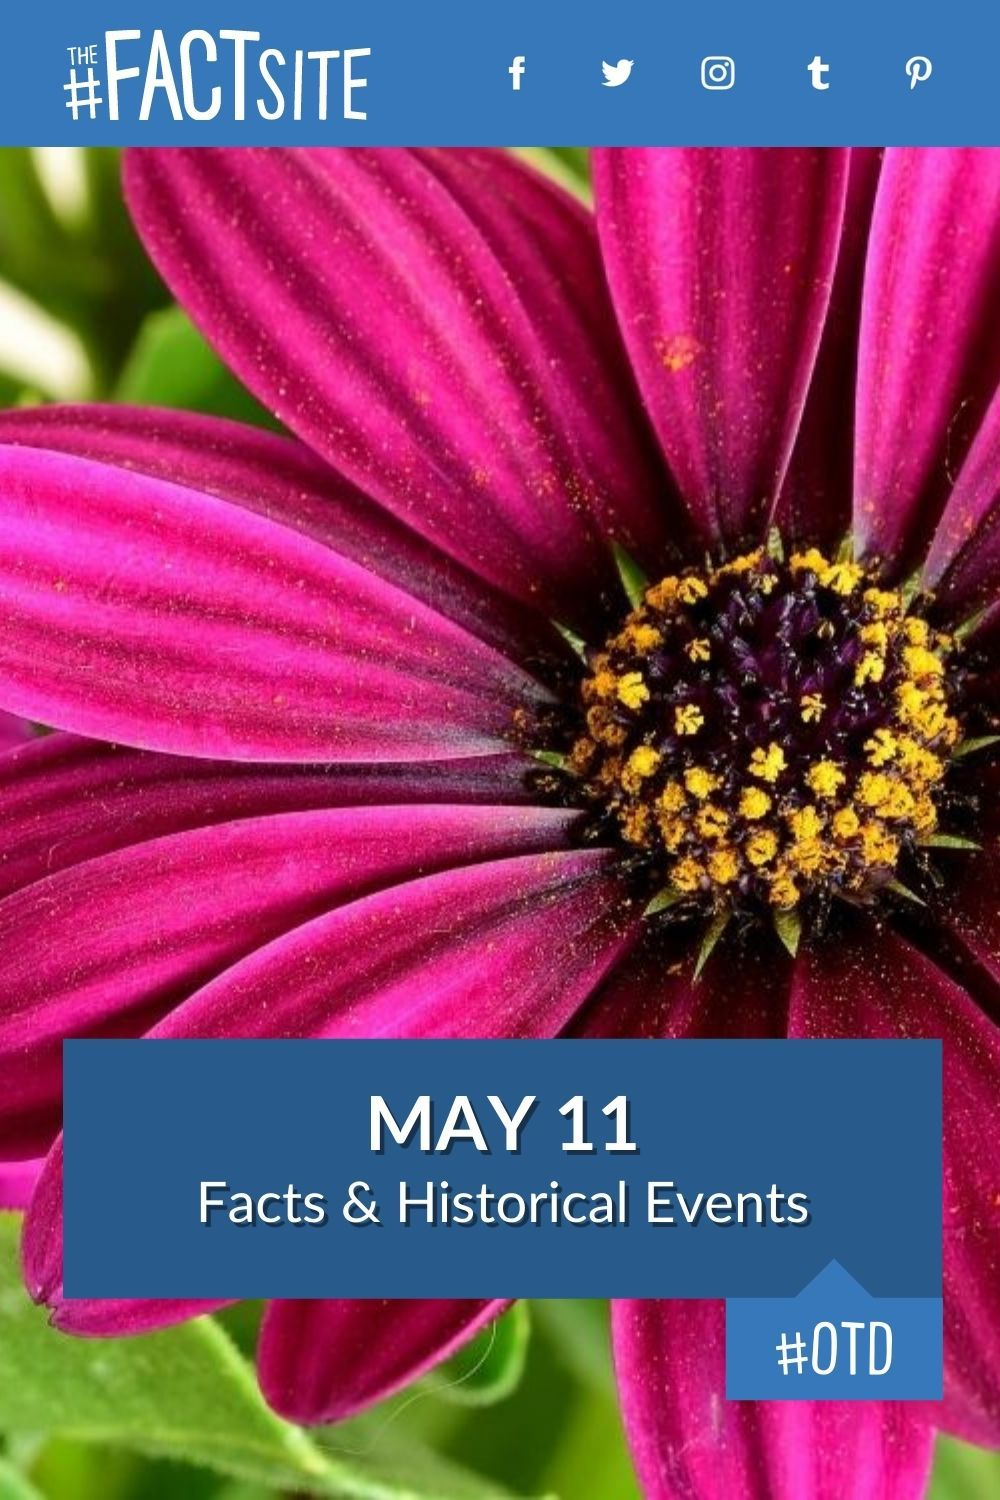 Facts & Historic Events That Happened on May 11